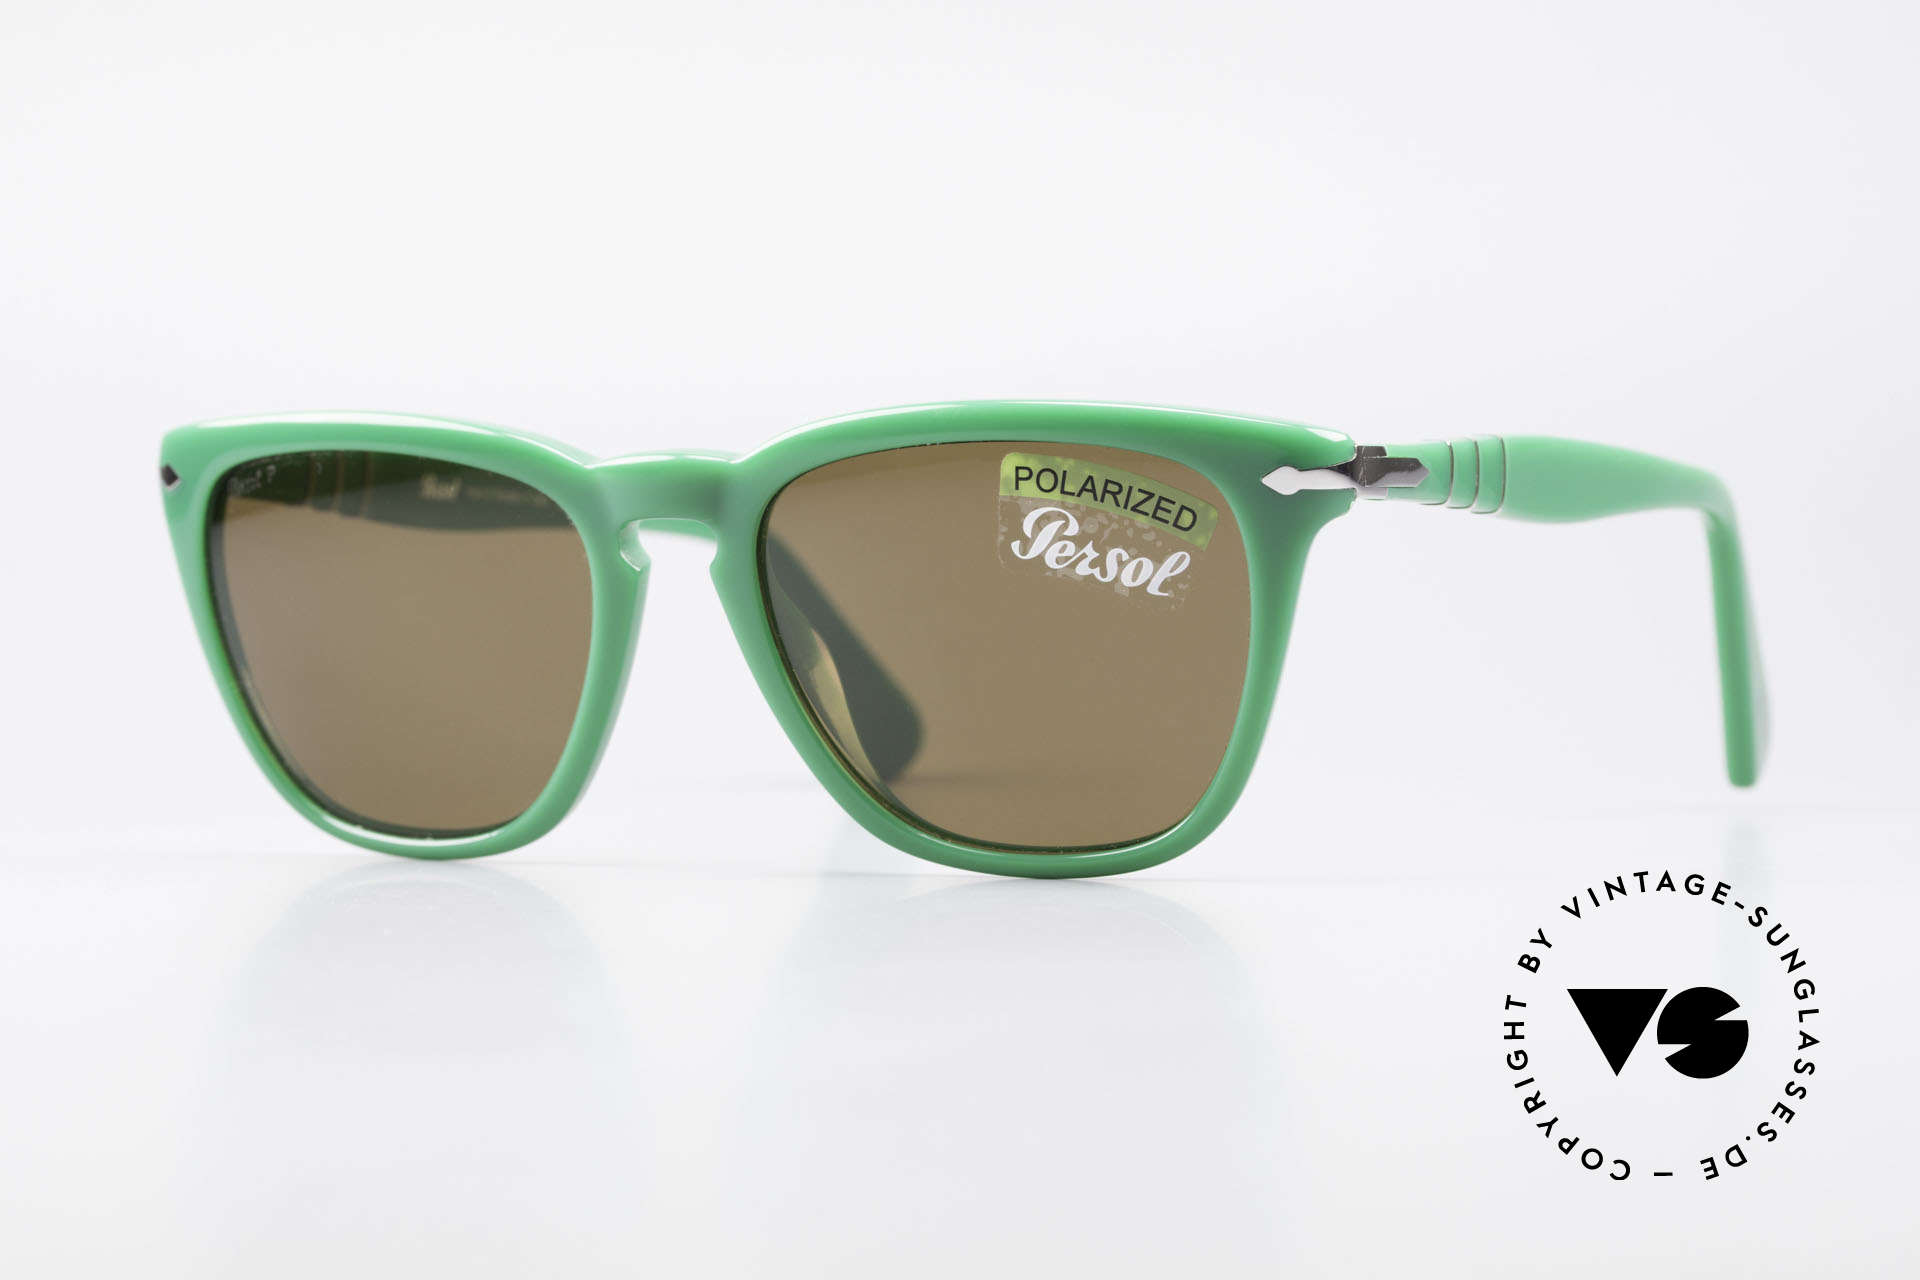 Persol 3024 Classic Sunglasses Polarized, very elegant PANTO STYLE sunglasses by Persol, Made for Men and Women